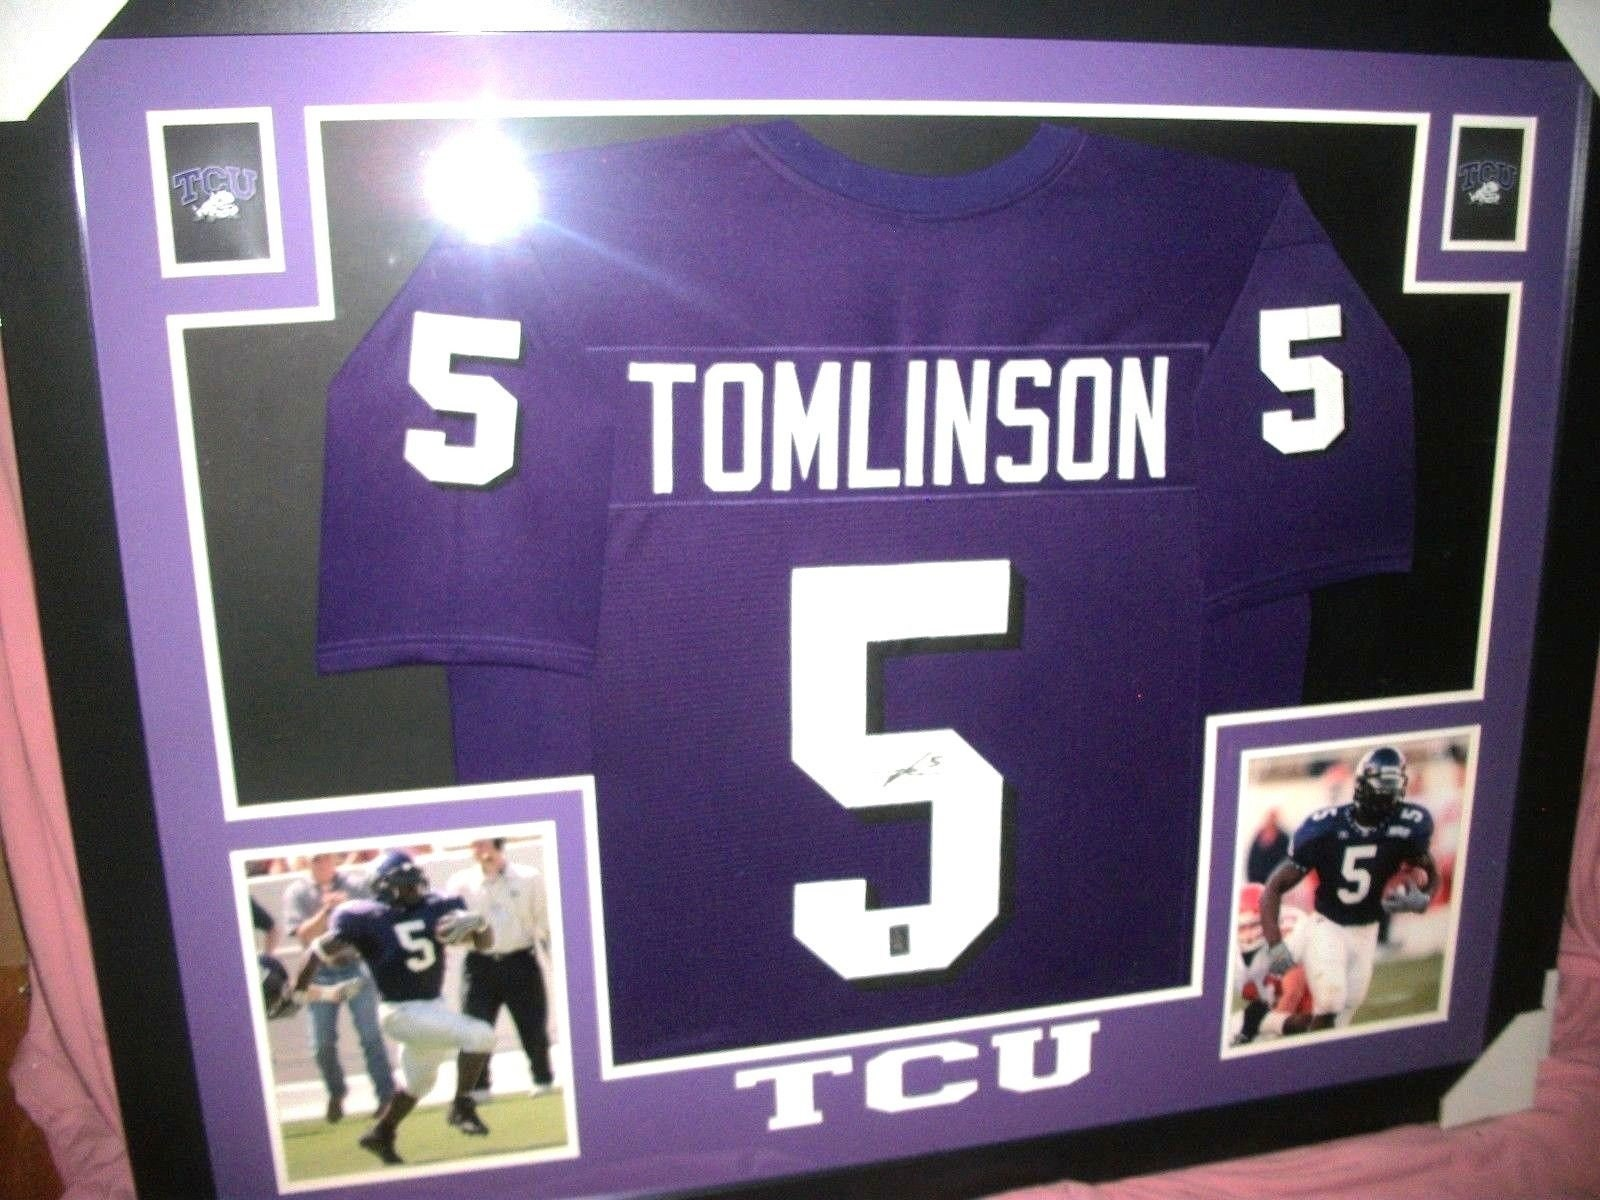 6b78b2c4f LaDainian Tomlinson Signed TCU Texas Christian University 35x43 Custom  Framed Jersey Football Hall of Fame (JSA COA) Brand New!